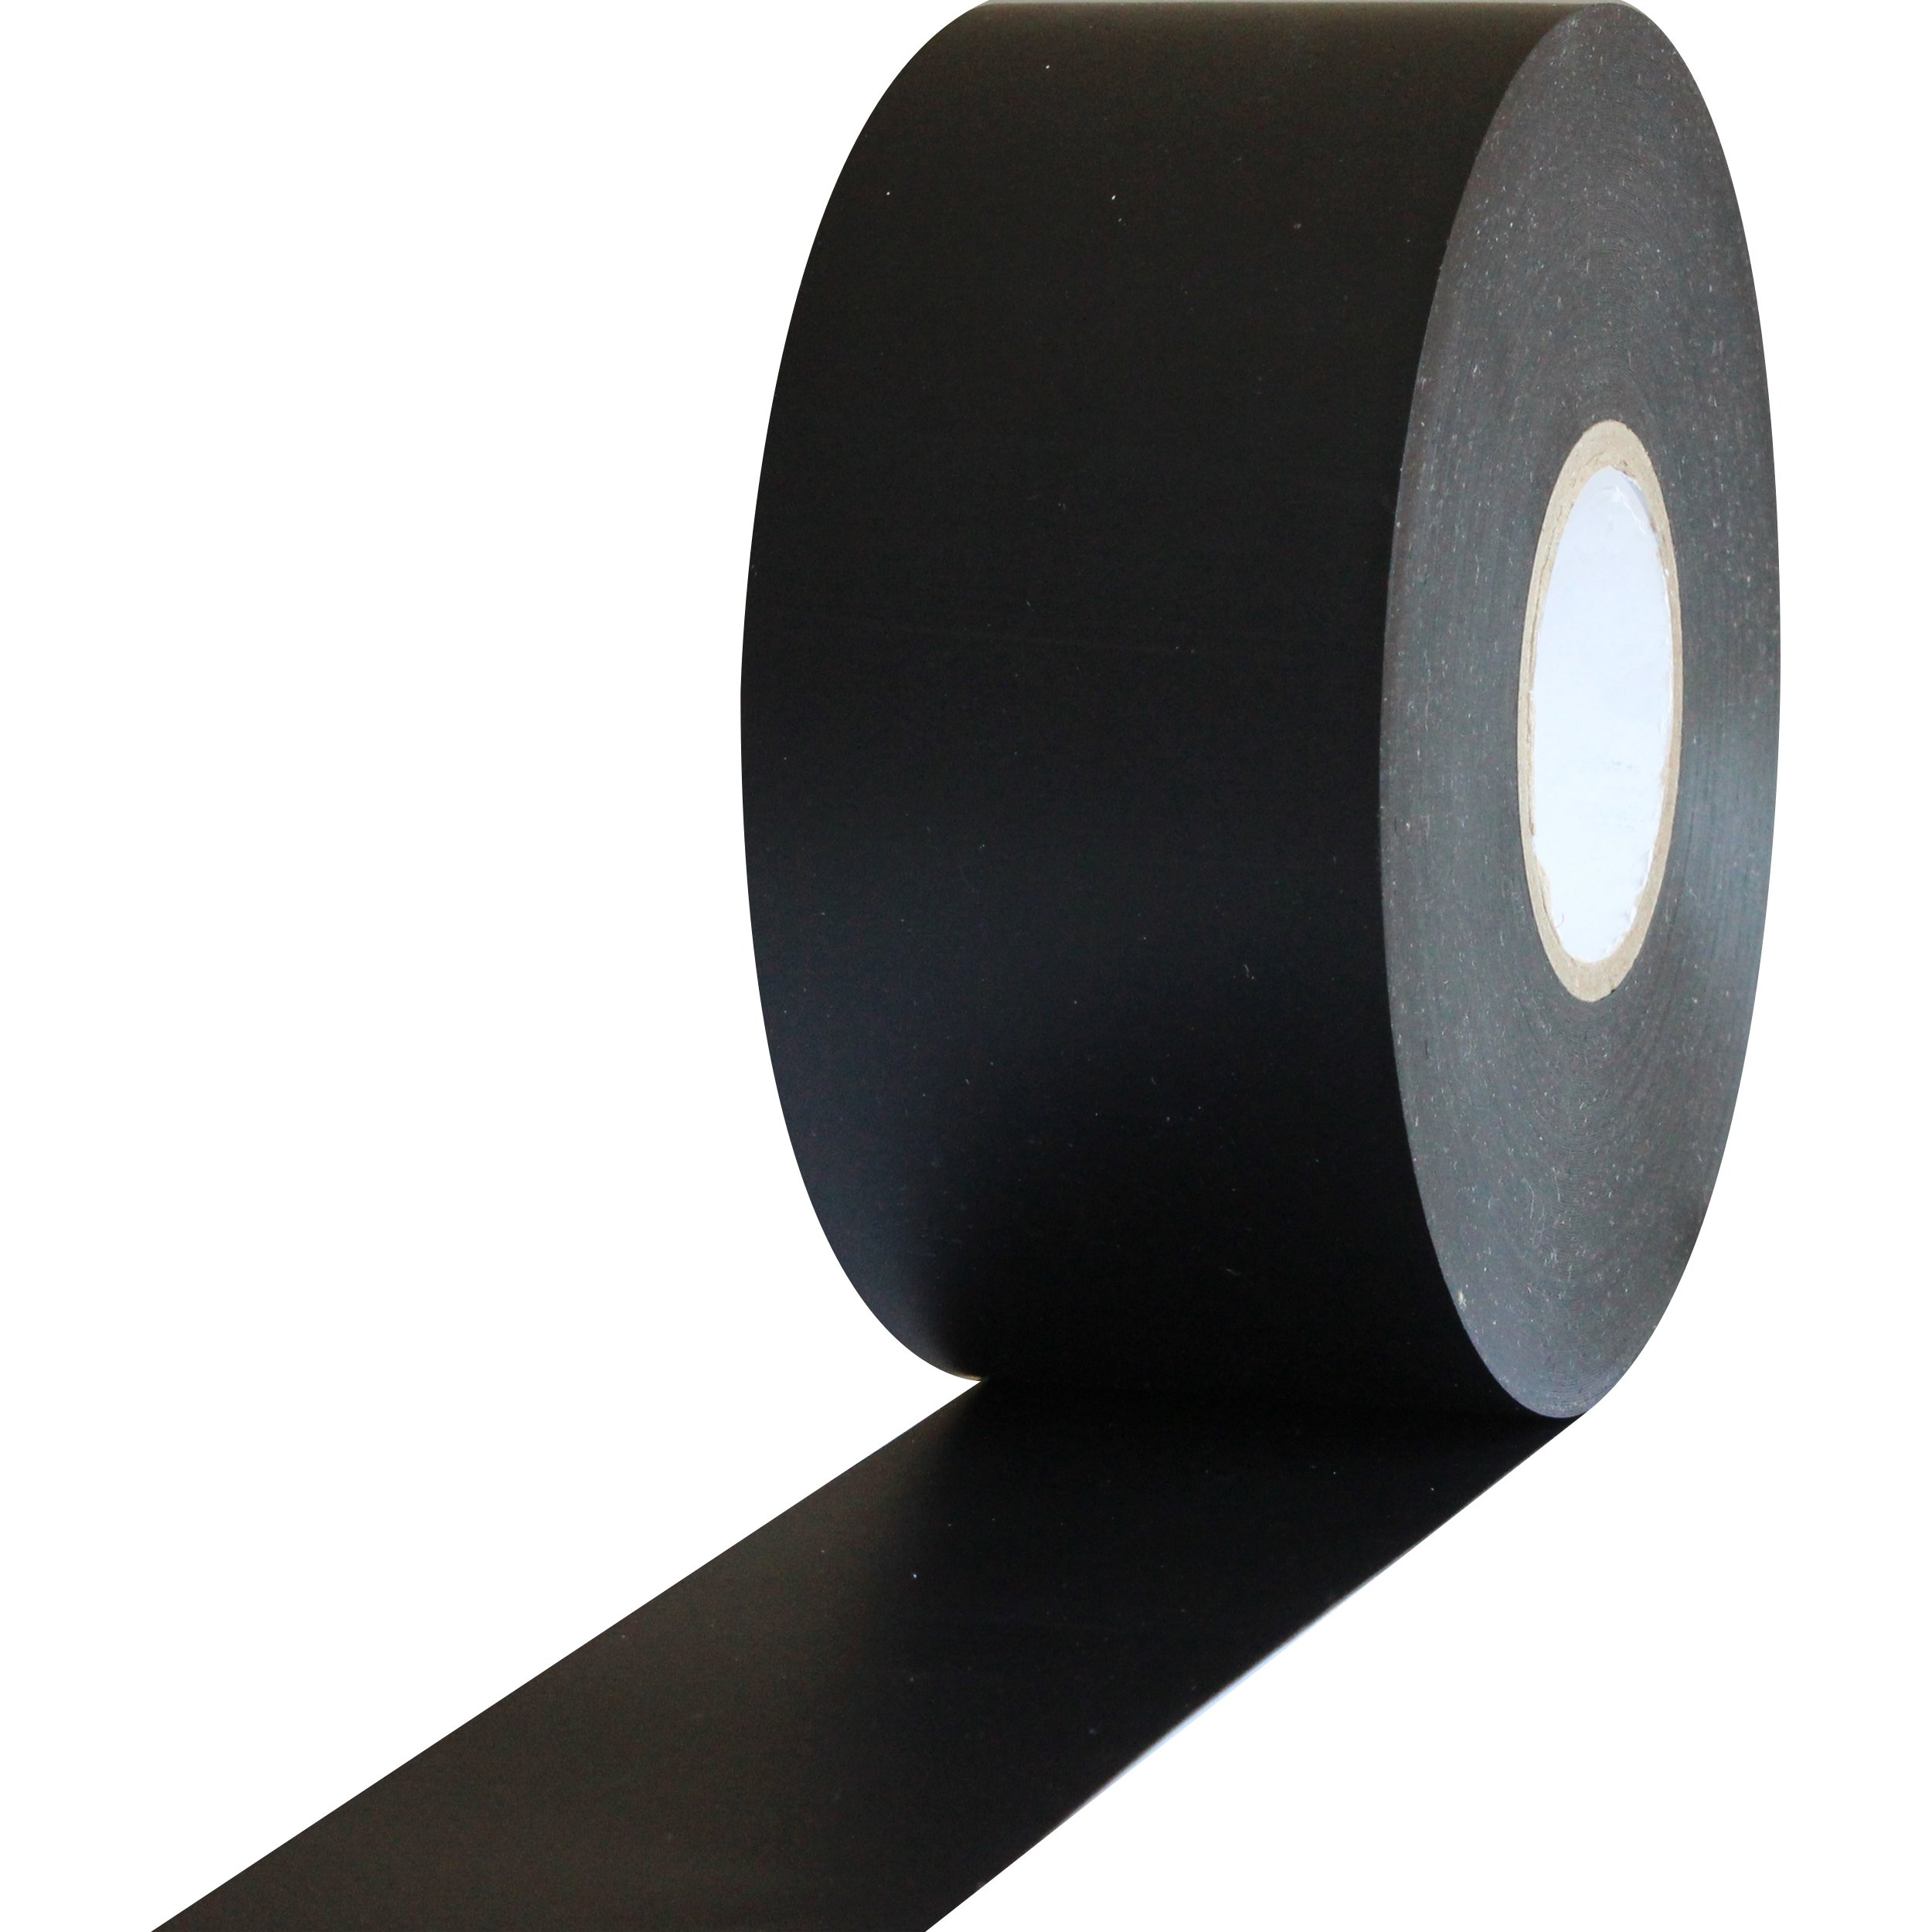 ProTapes Pro 603 Rubber Pipe Wrap Tape with PVC Backing, 10 mil Thick, 100' Length x 2'' Width, Black (Pack of 1)